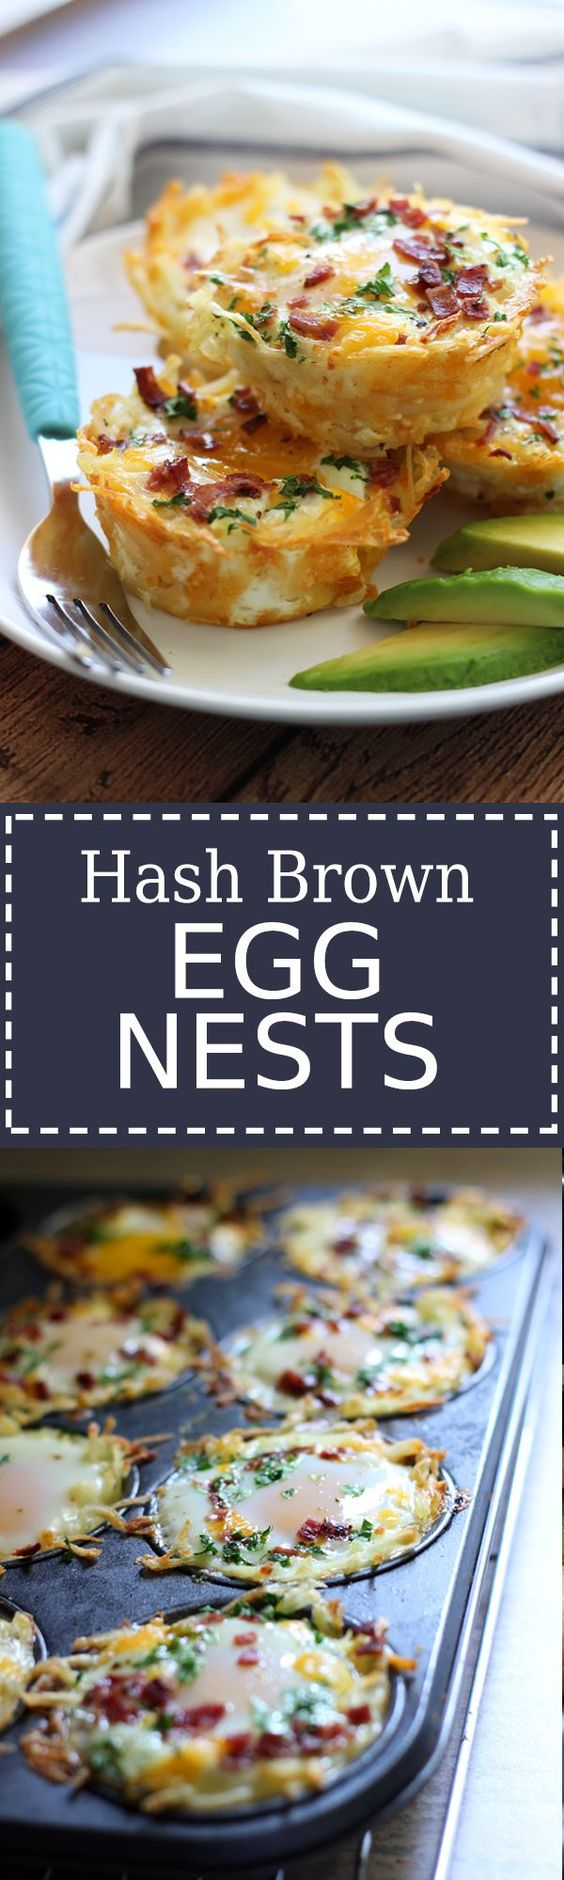 Shredded hash browns and cheese nests baked until crispy topped with a baked eggs and crumbled bacon